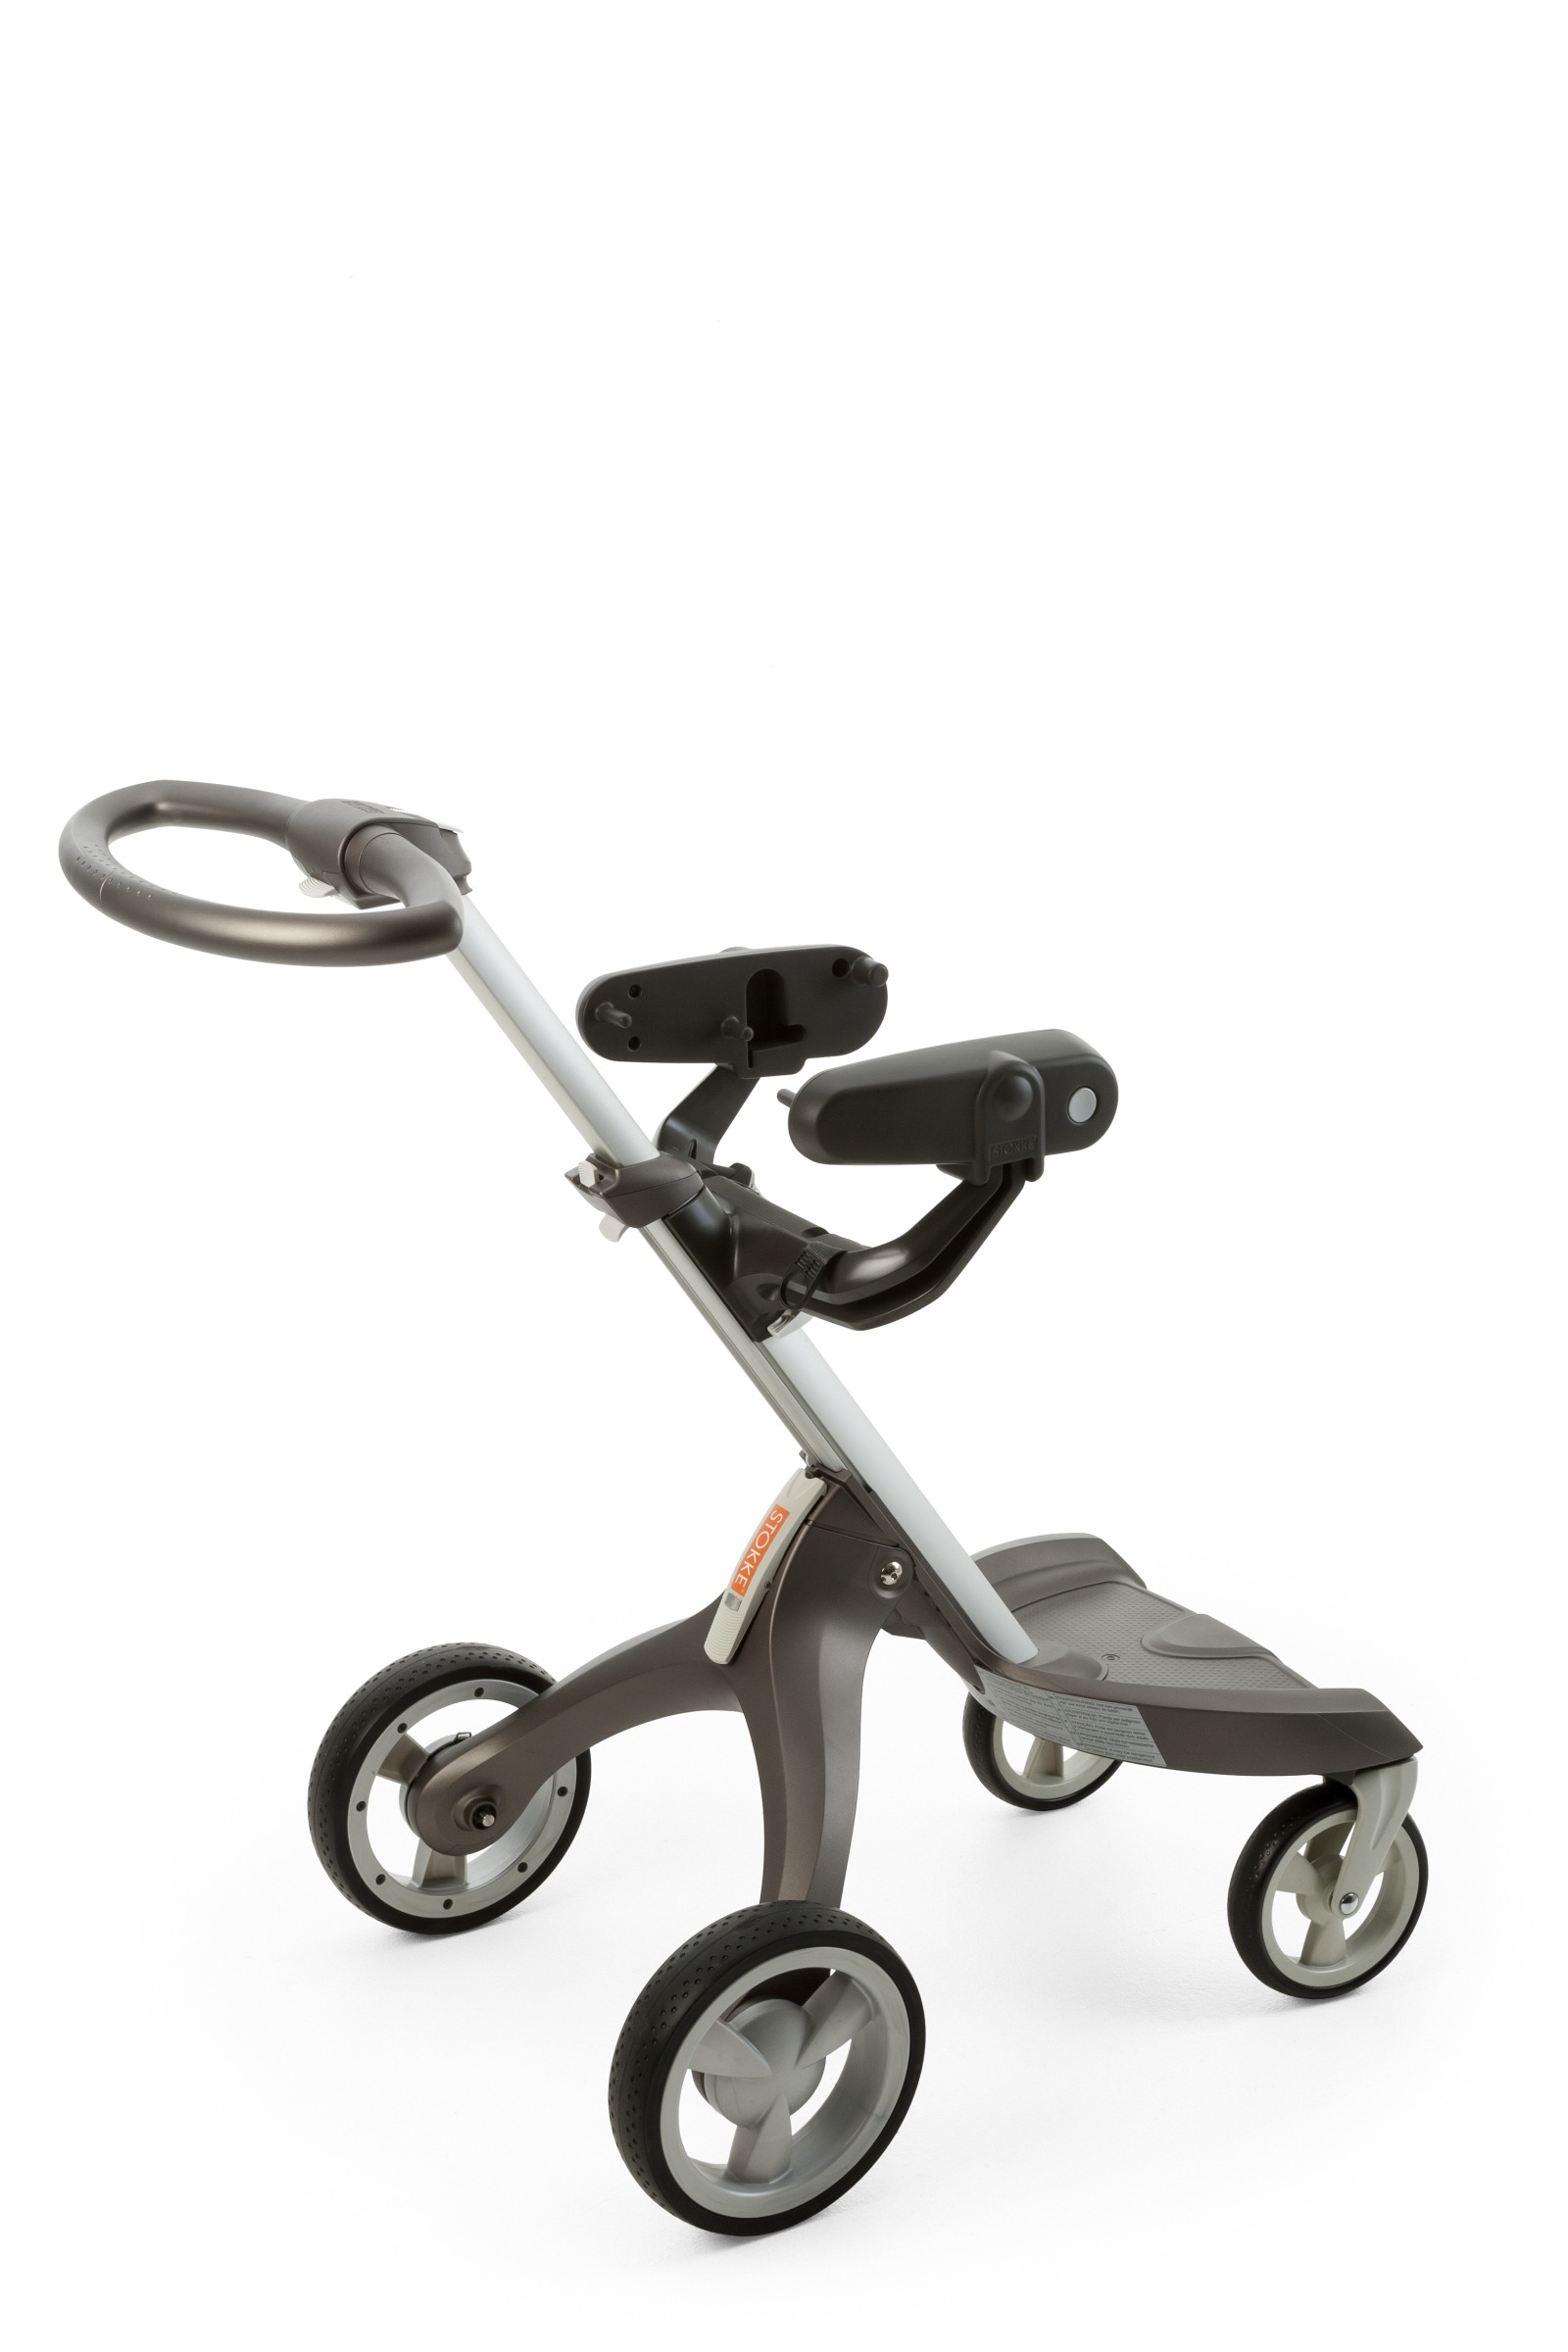 stokke stroller car seat adaptor for peg perego. Black Bedroom Furniture Sets. Home Design Ideas